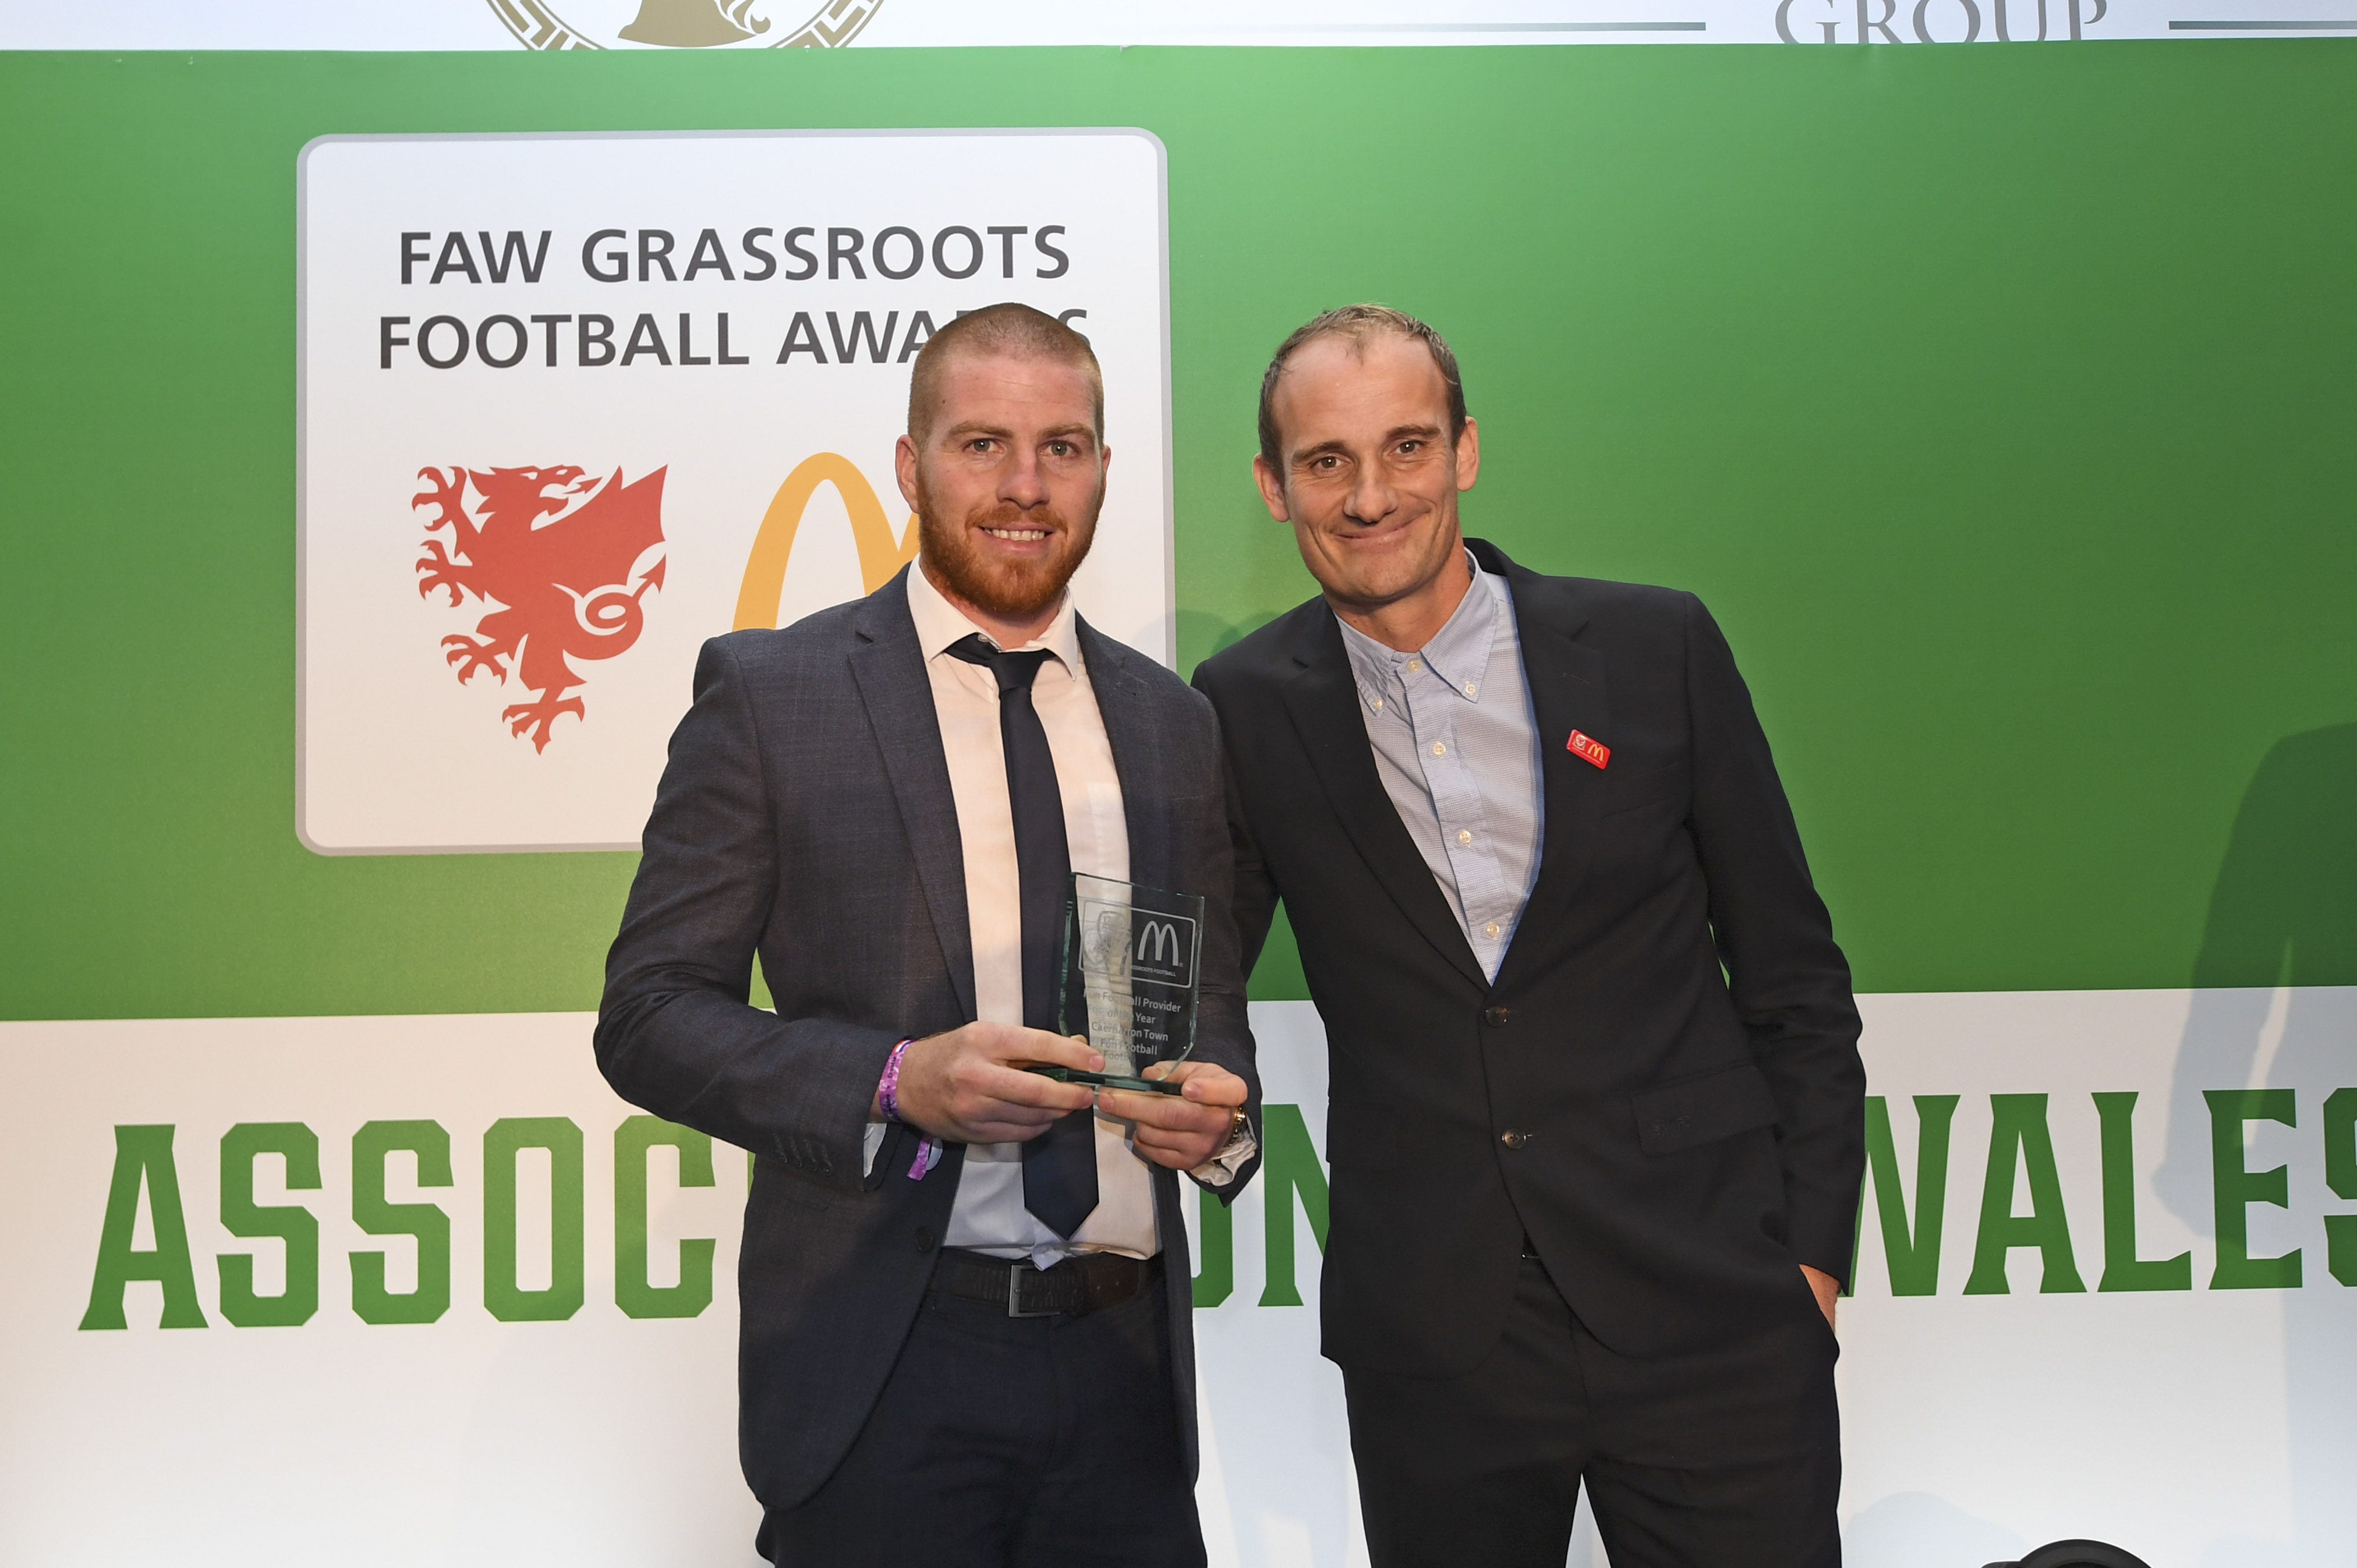 Caernarfon Town scoop Fun Football Provider of the Year as volunteer Jessica Lane receives special recognition